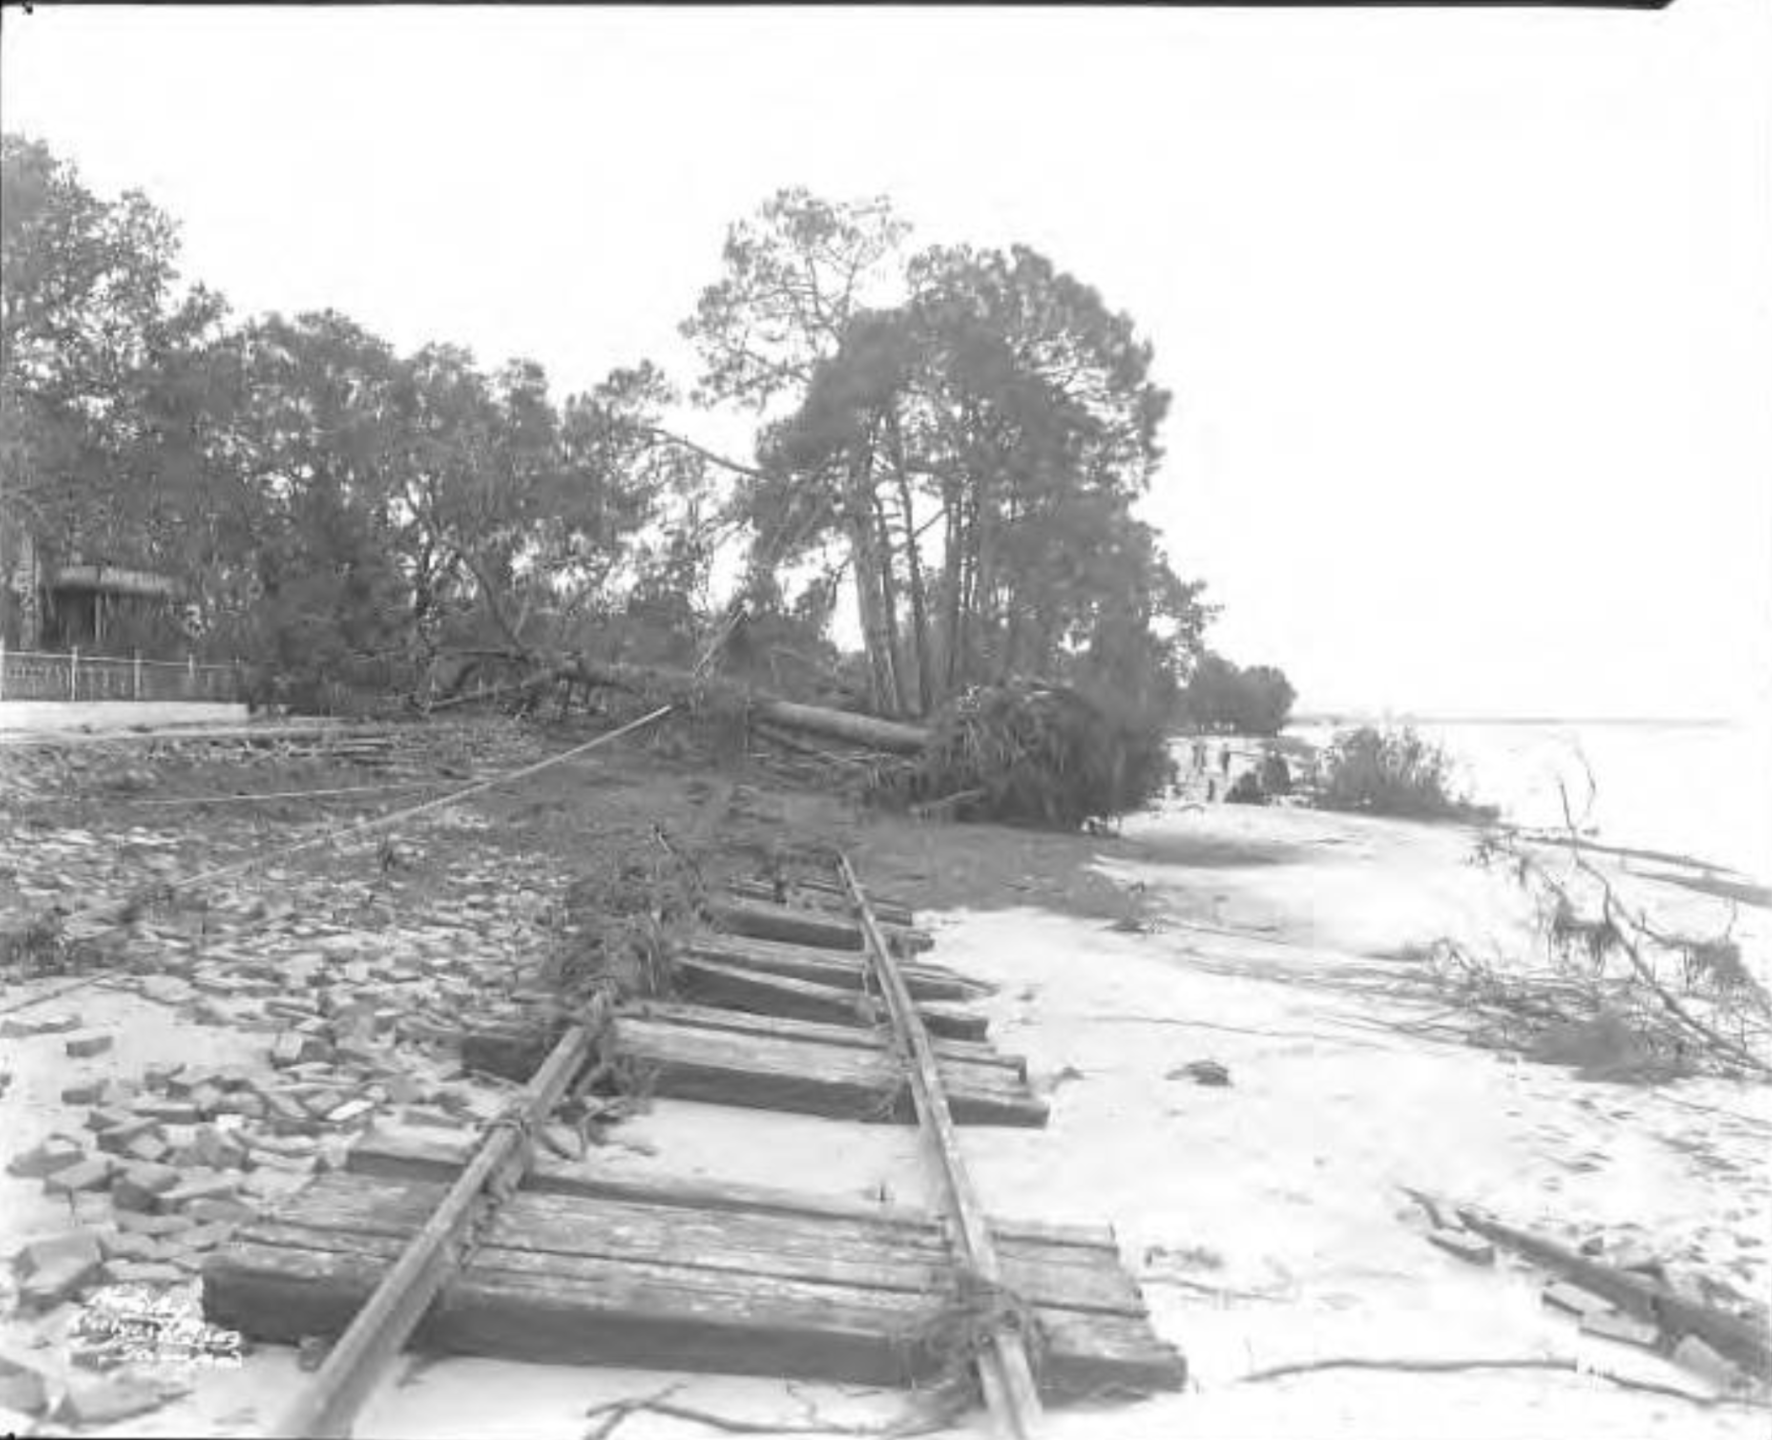 View of hurricane damage to trees, streetcar tracks, and road surface on Bayshore Boulevard after storm.png